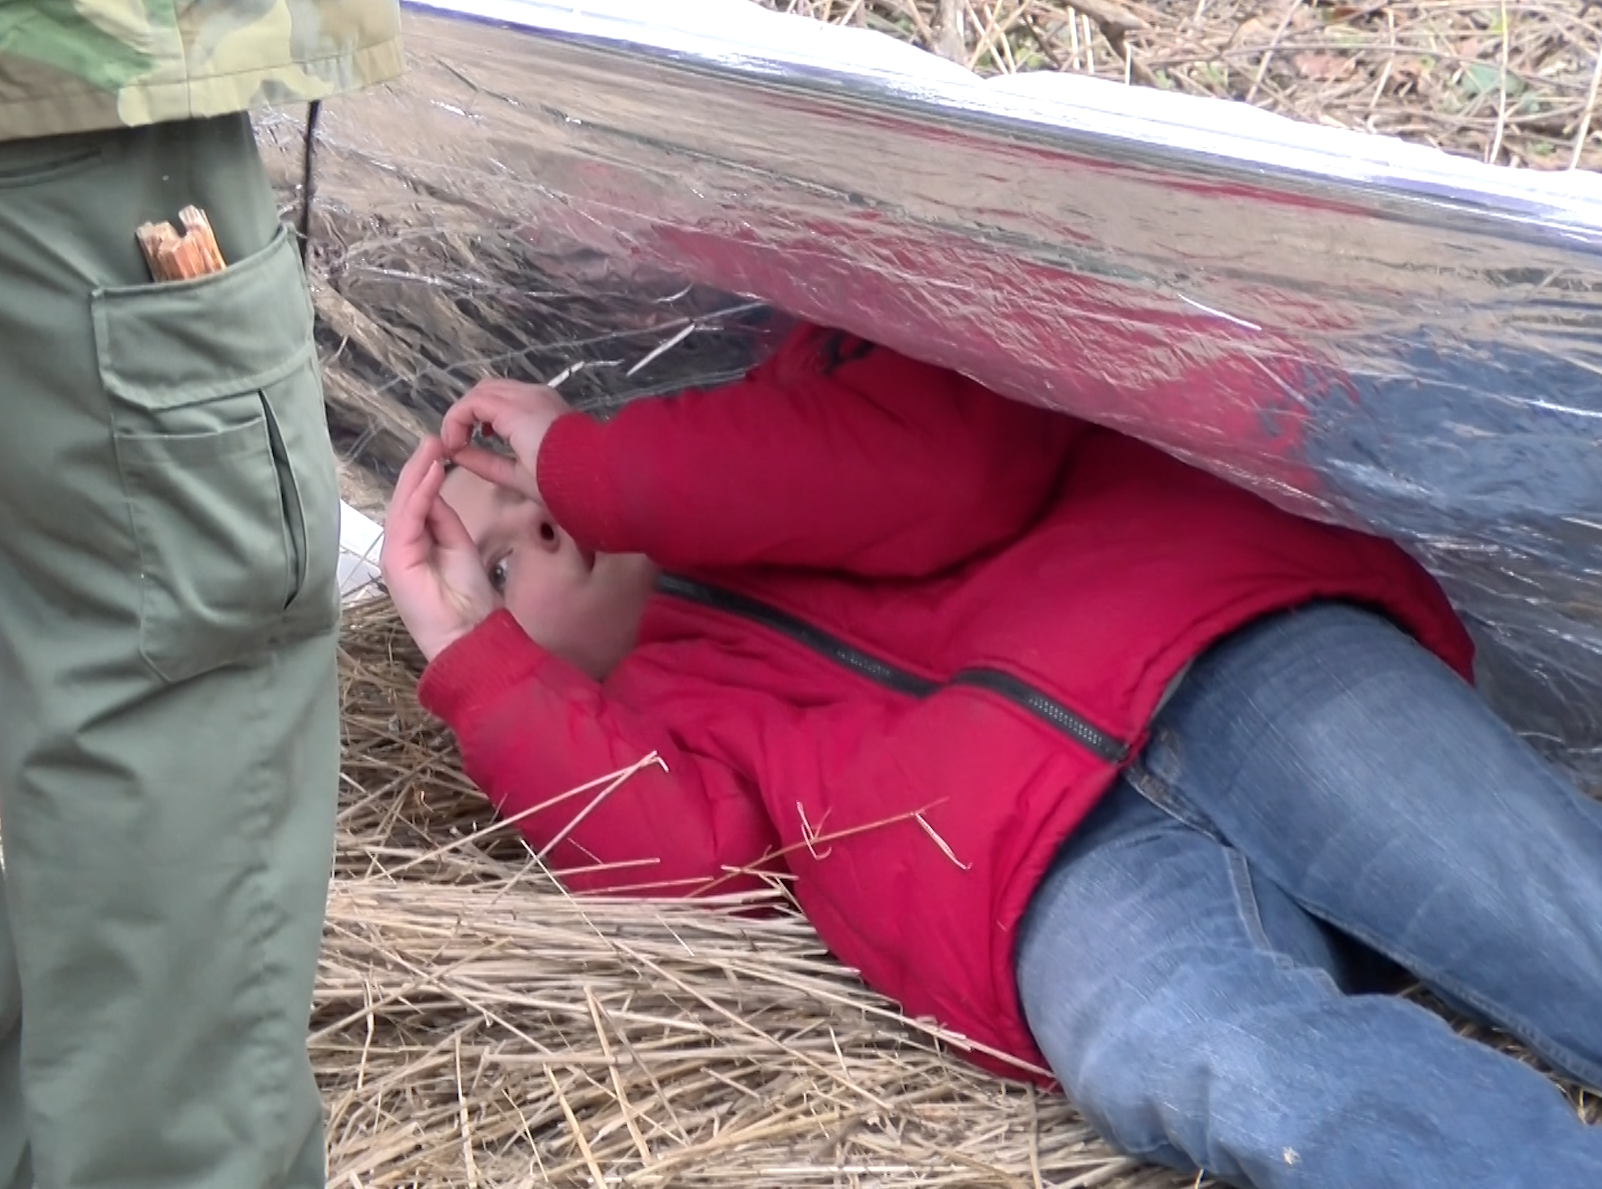 A boy tries out the overnight shelter made during a woodland survival class at the Pa. Game Commission site.